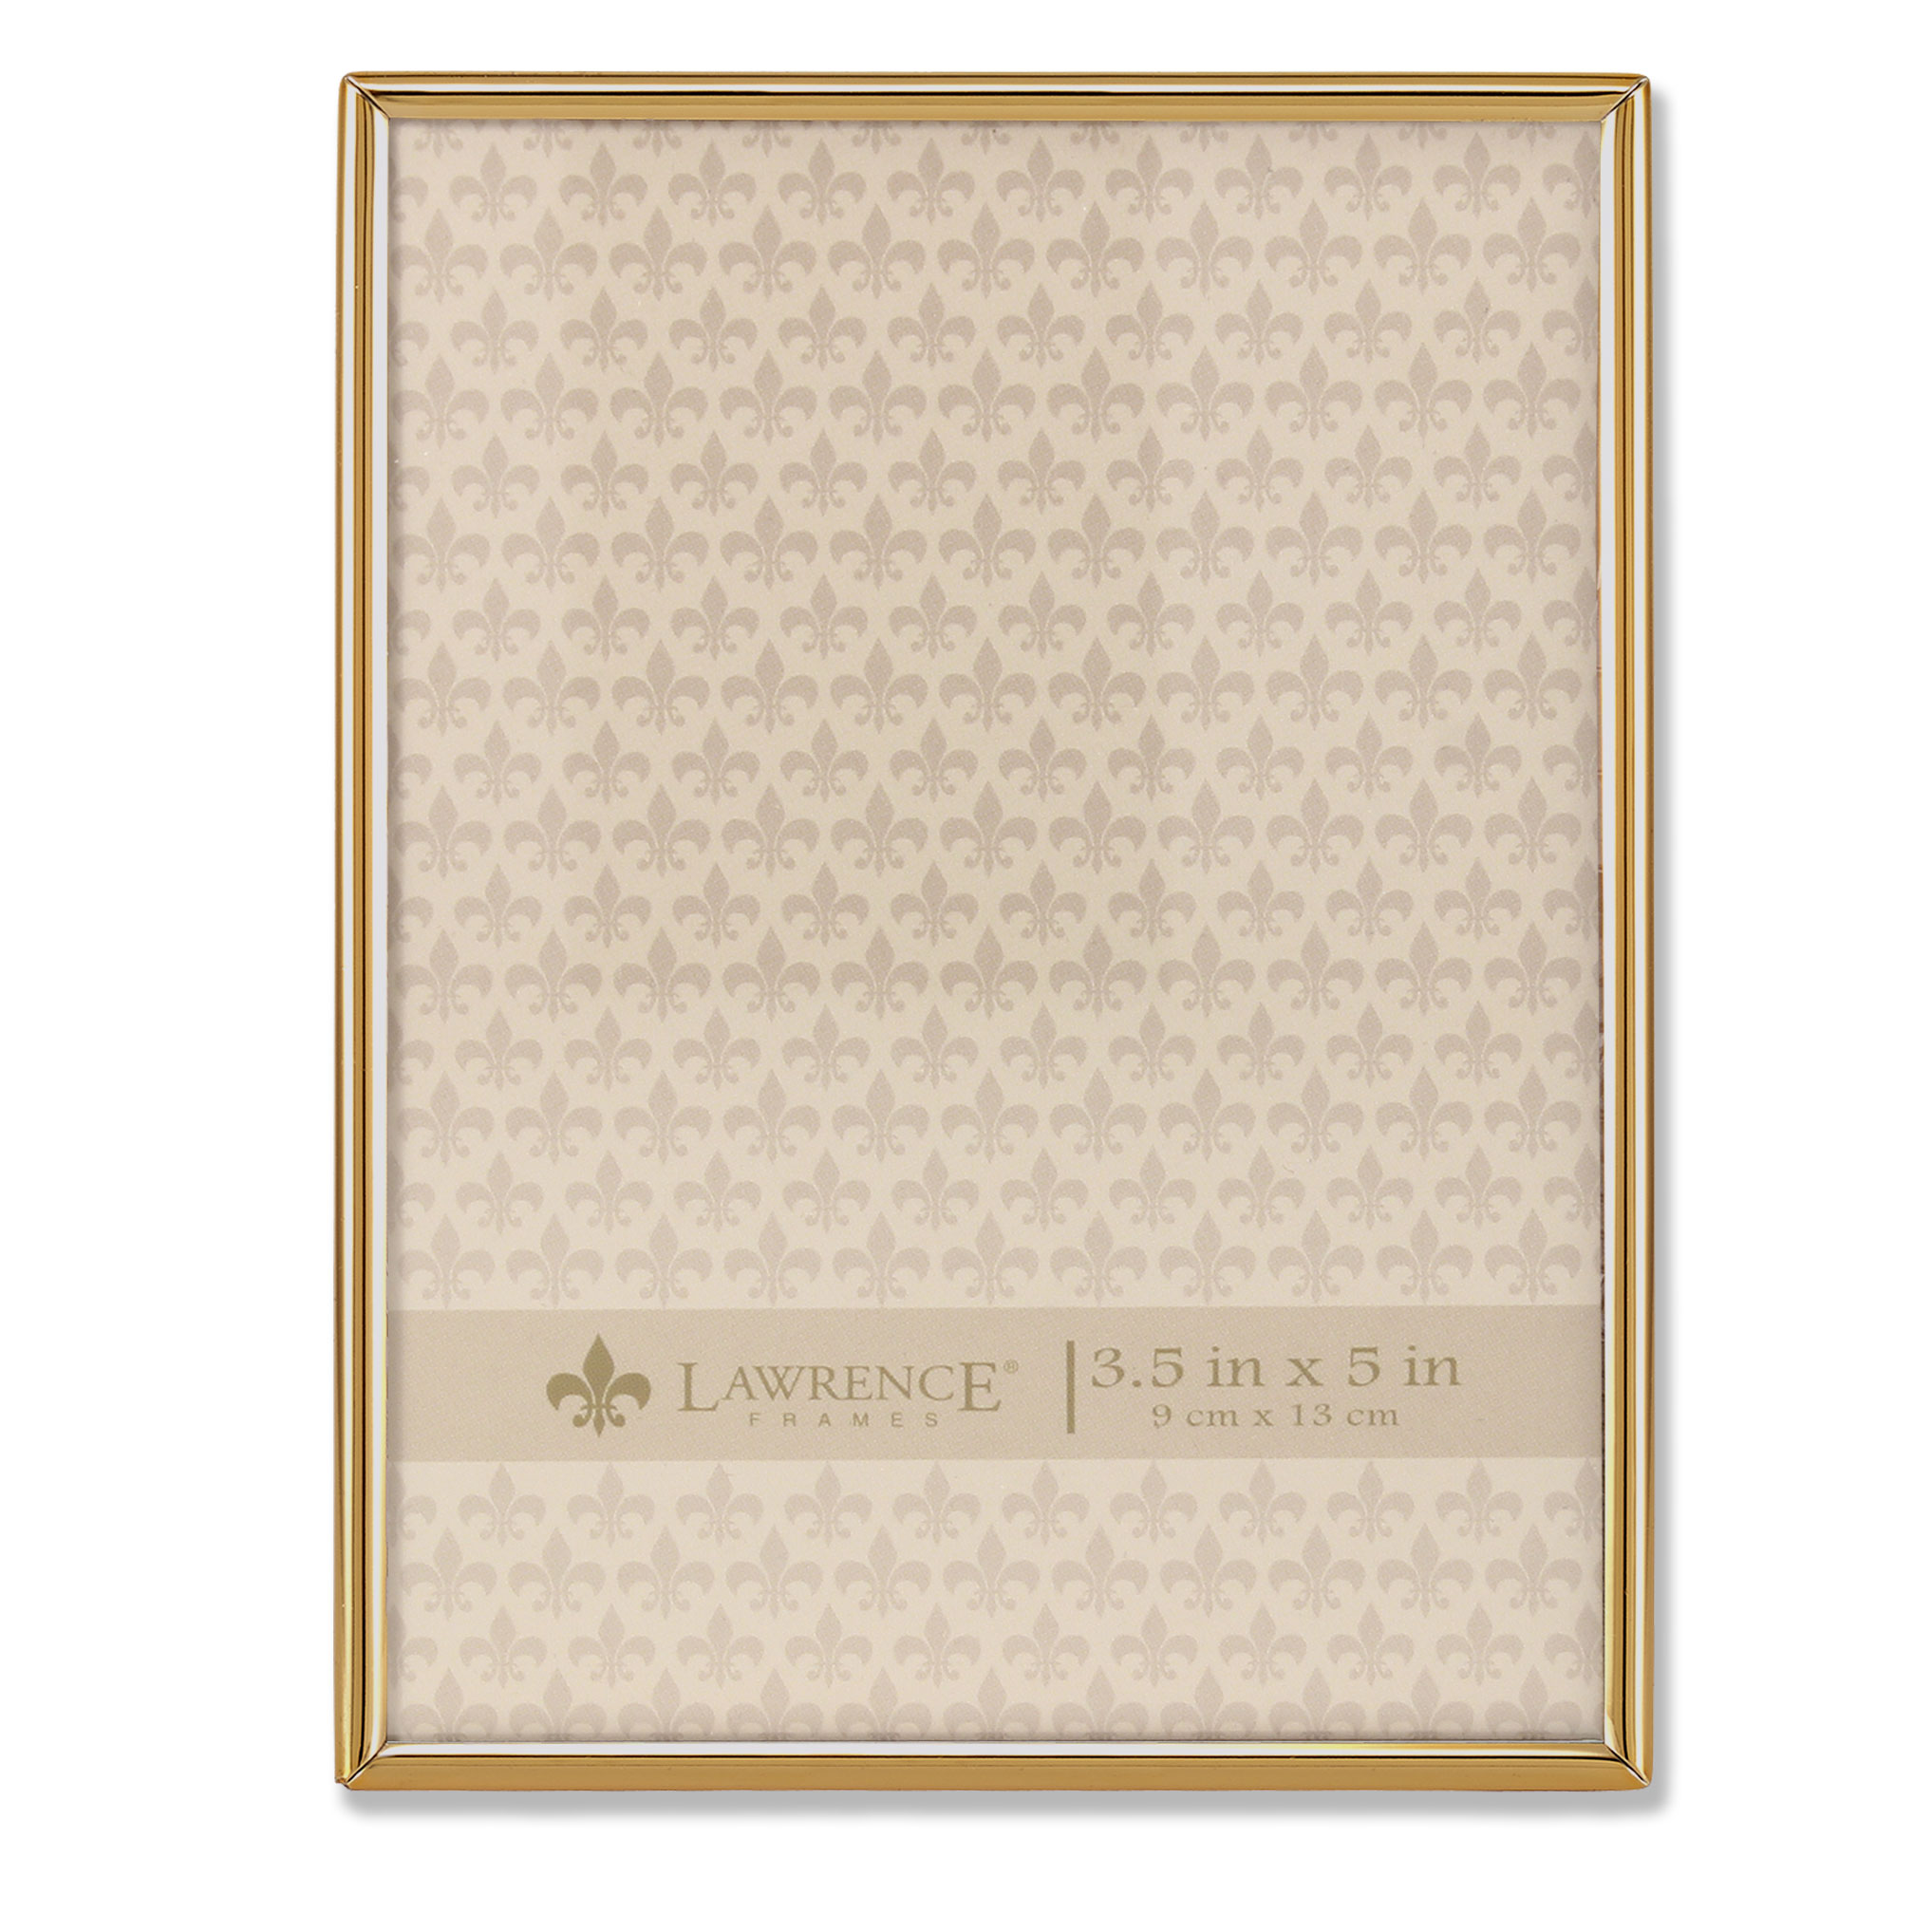 3.5x5 Simply Gold Metal Picture Frame | PhotoFrames.net